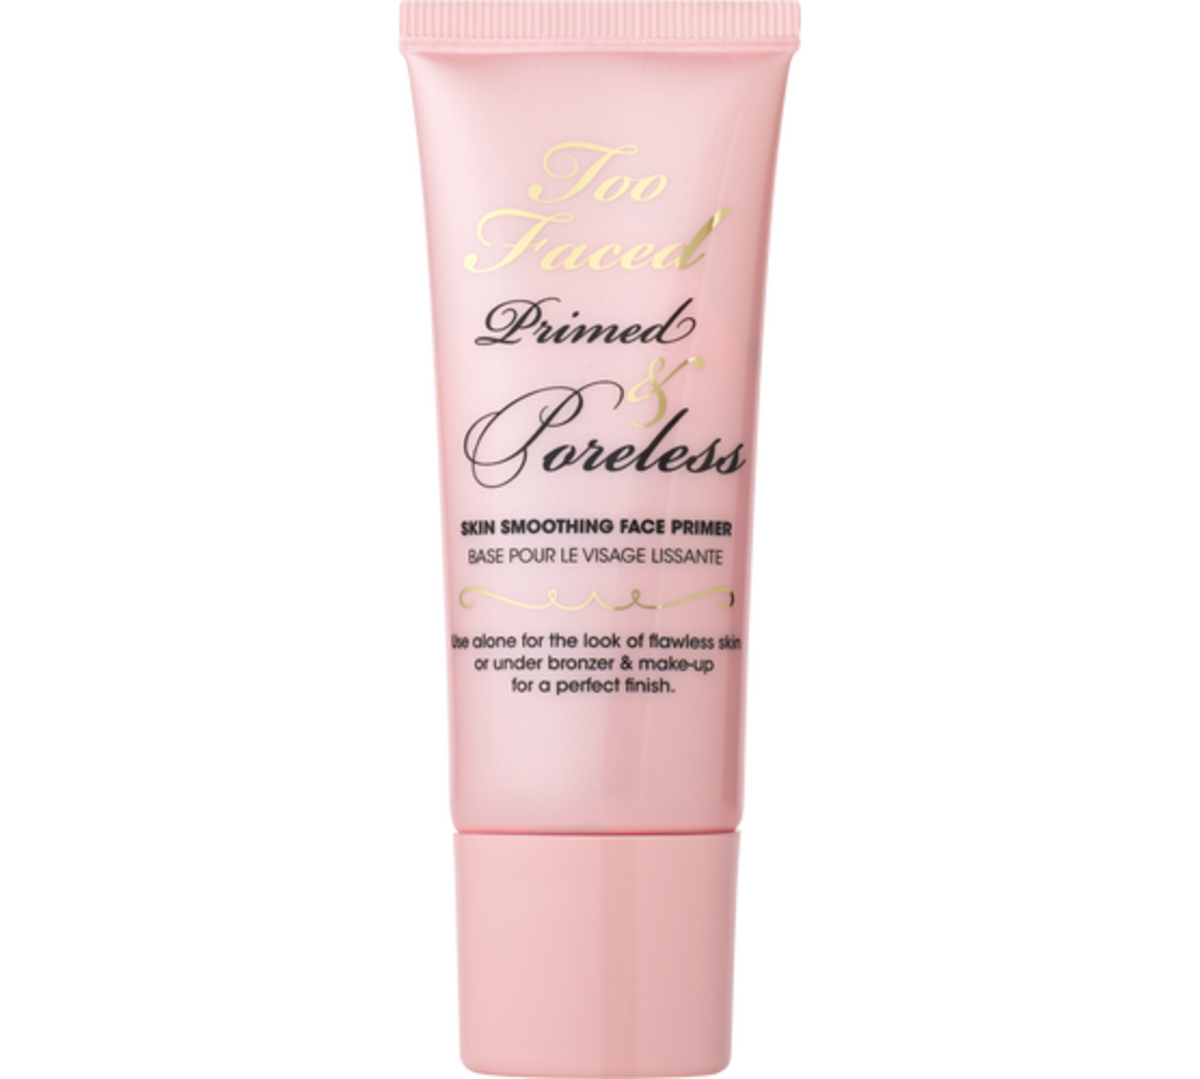 Too Faced Primed and Poreless Face Primer Product Review